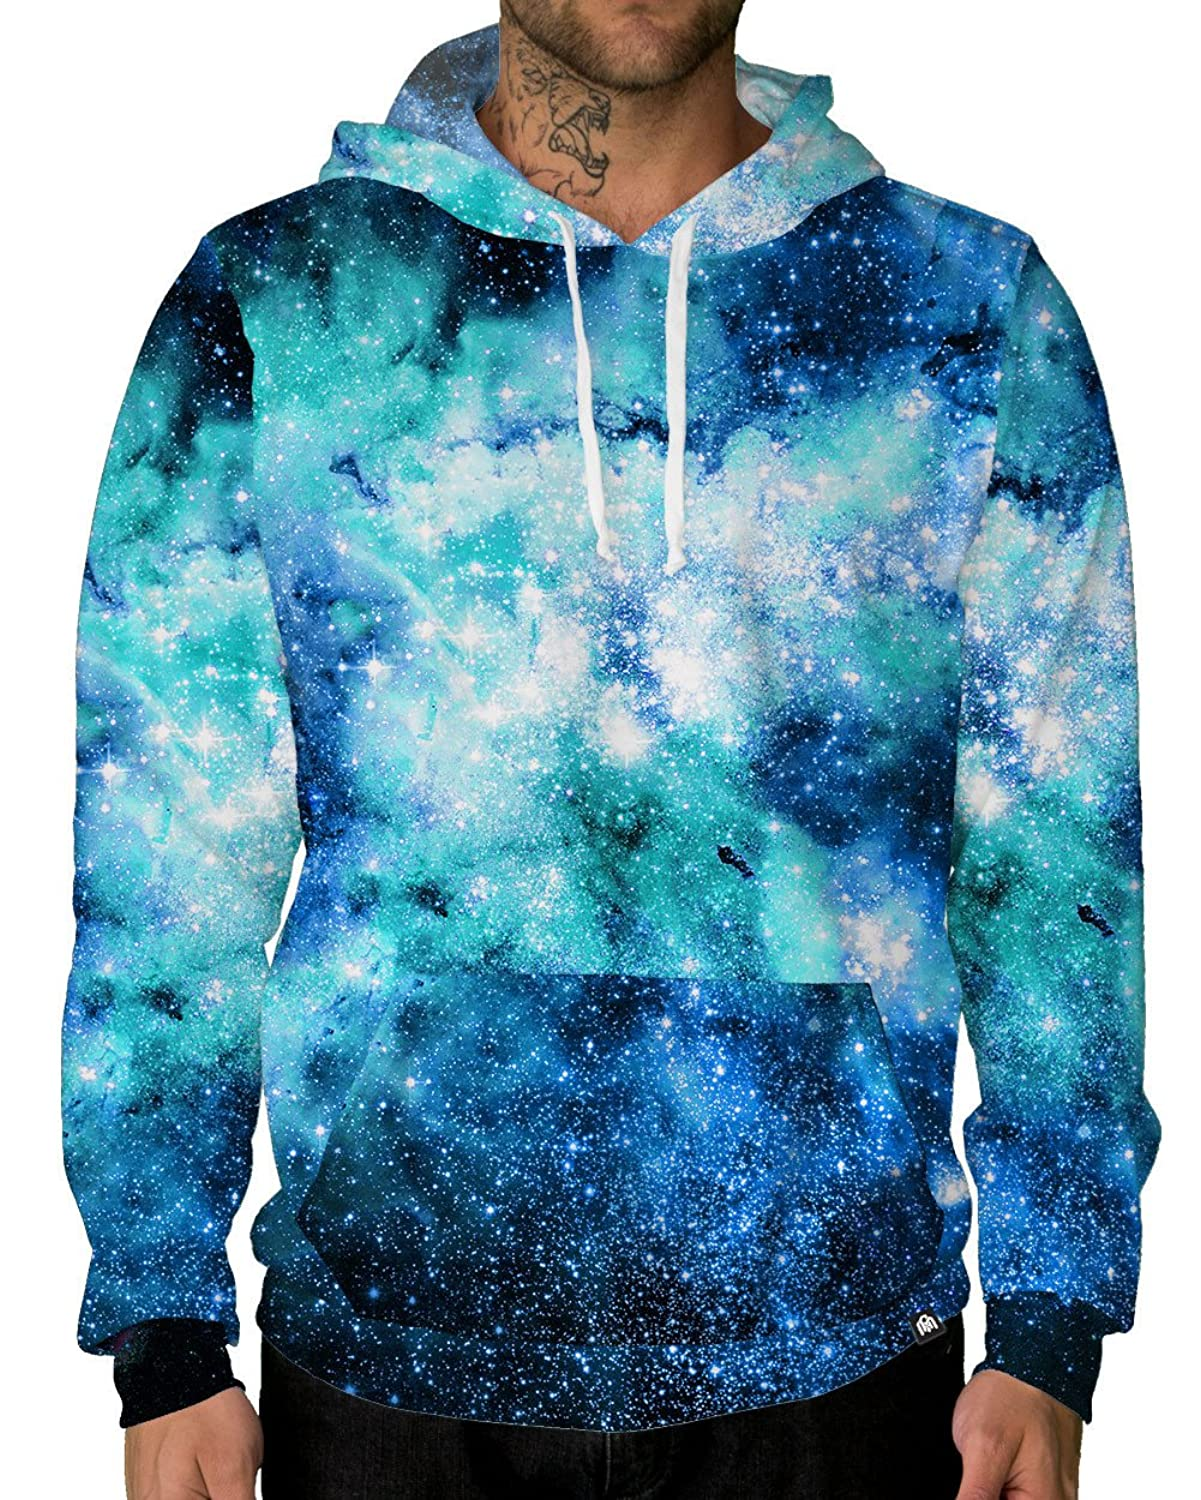 50%OFF INTO THE AM Nebula Skies Premium All Over Print Hoodie